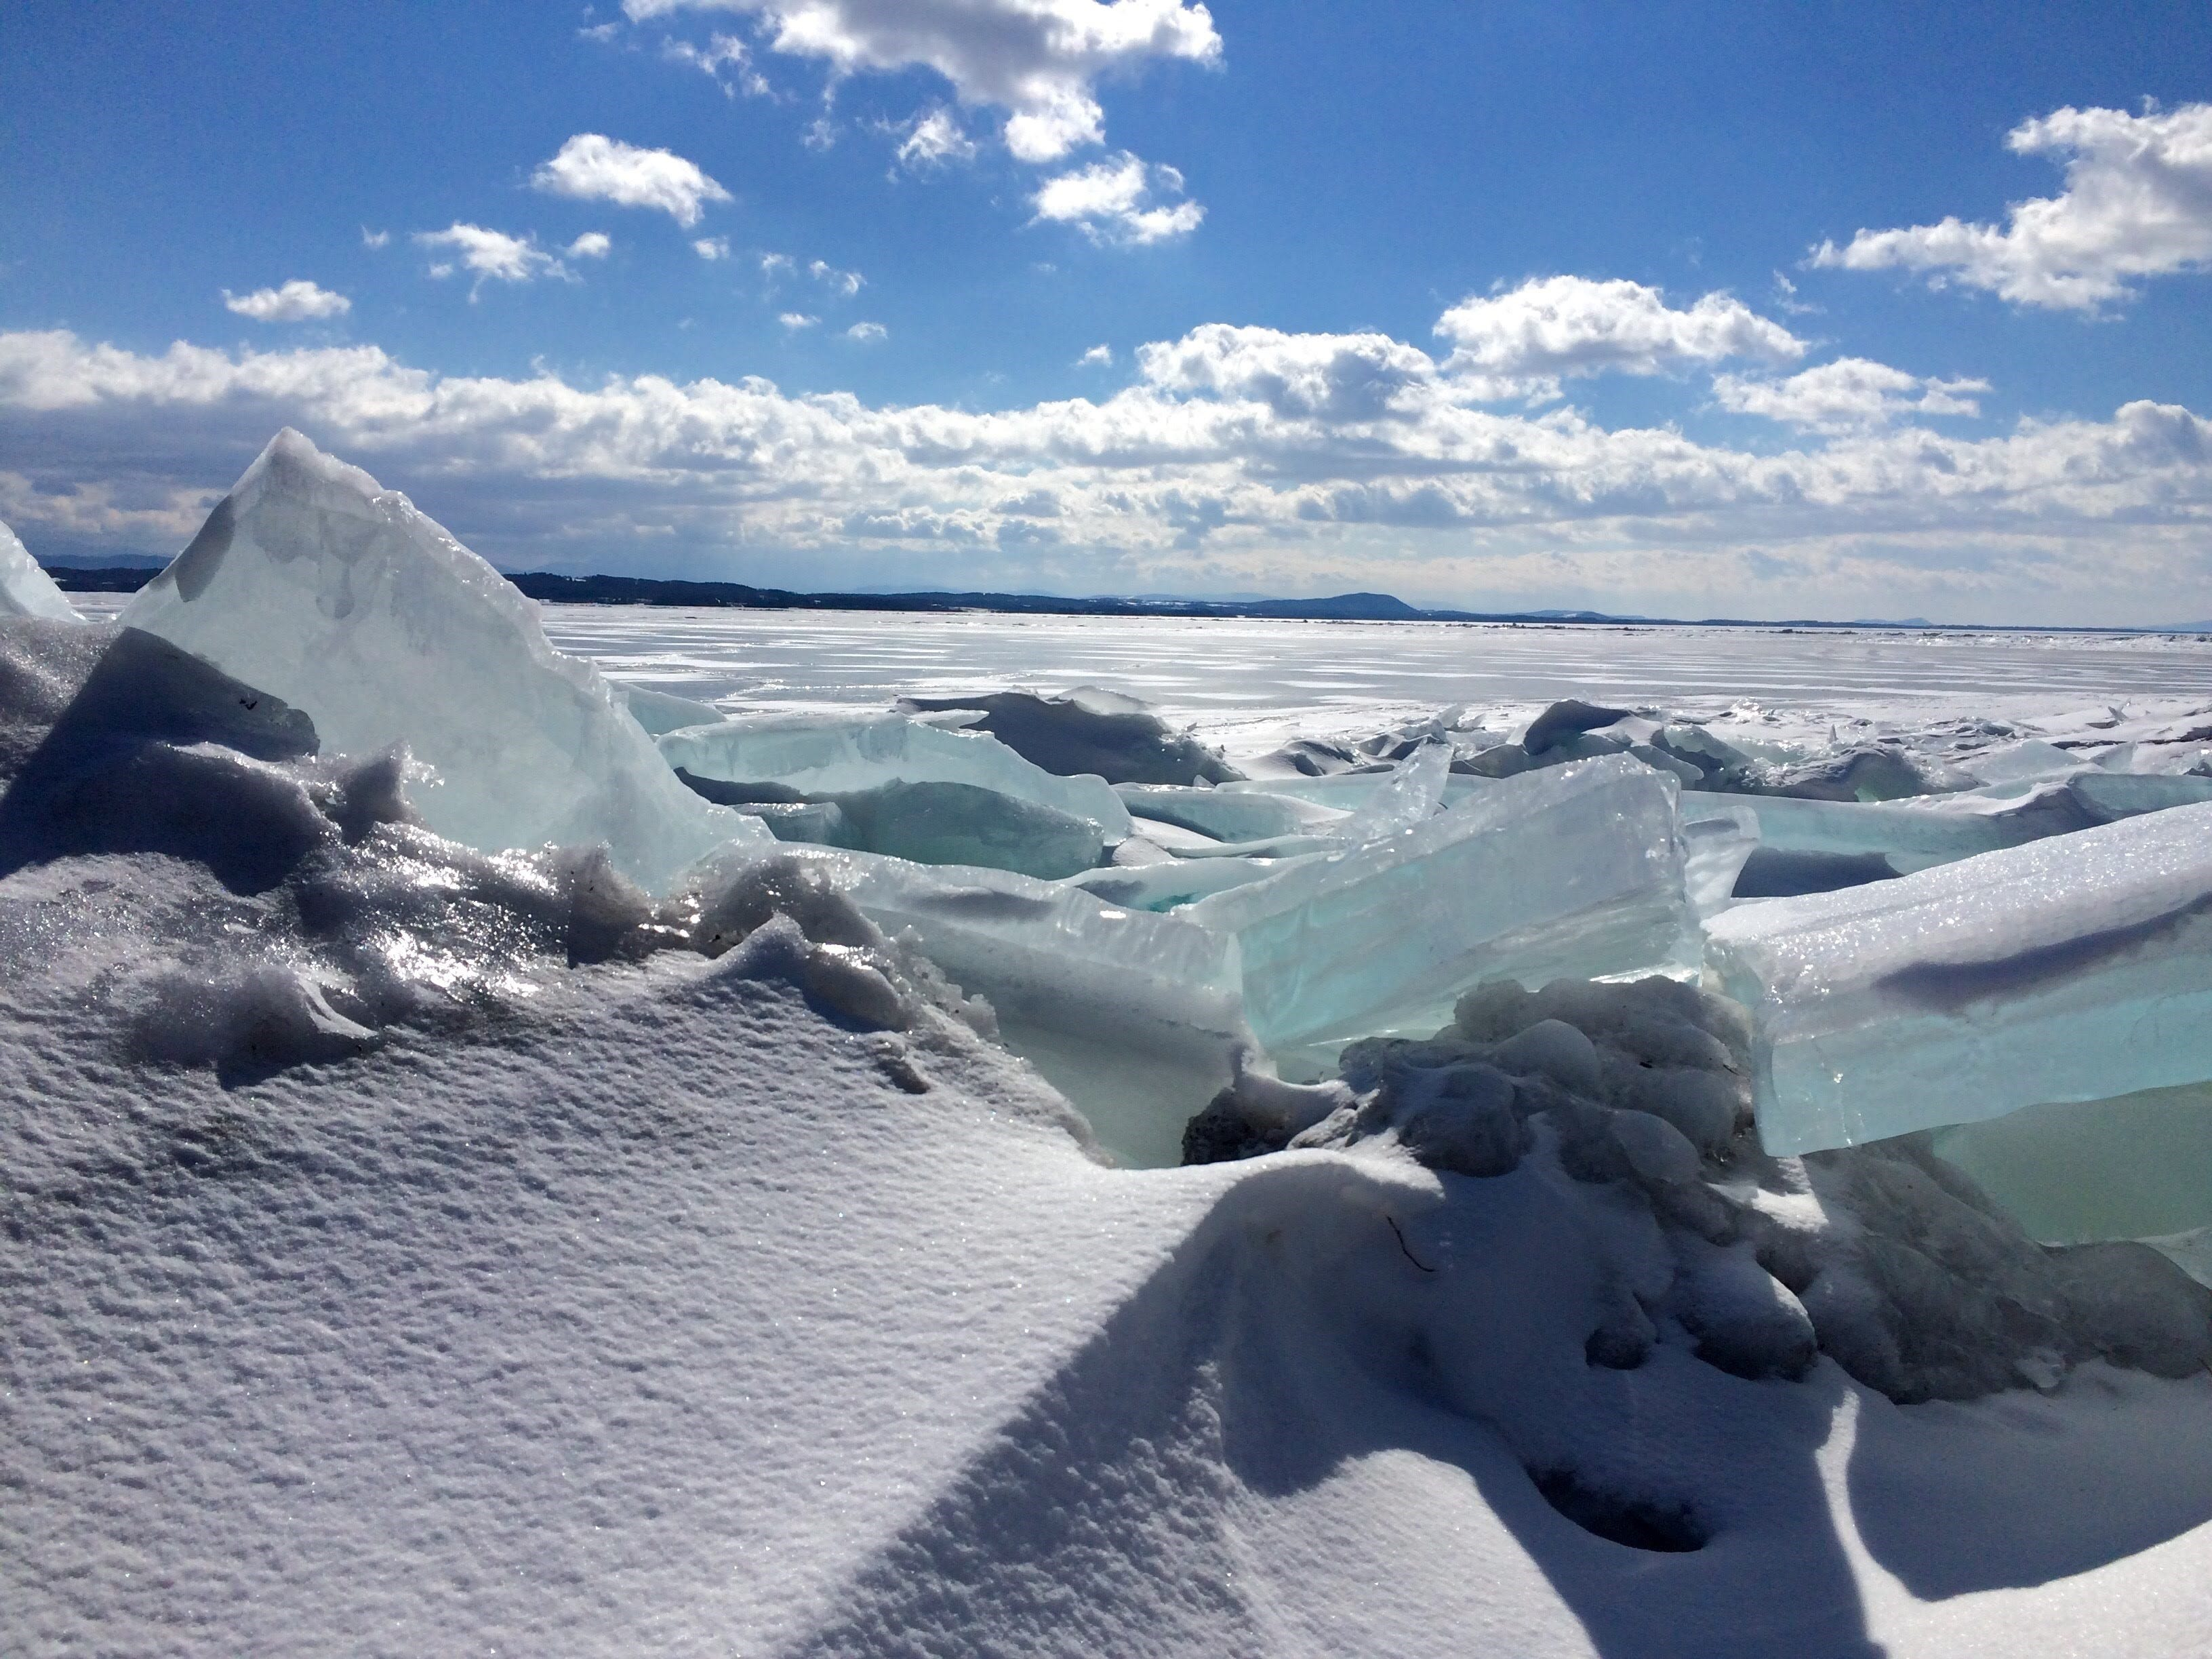 Blue-tinged ice chunks top an uplifted ridge on Lake Champlain in this undated photo.